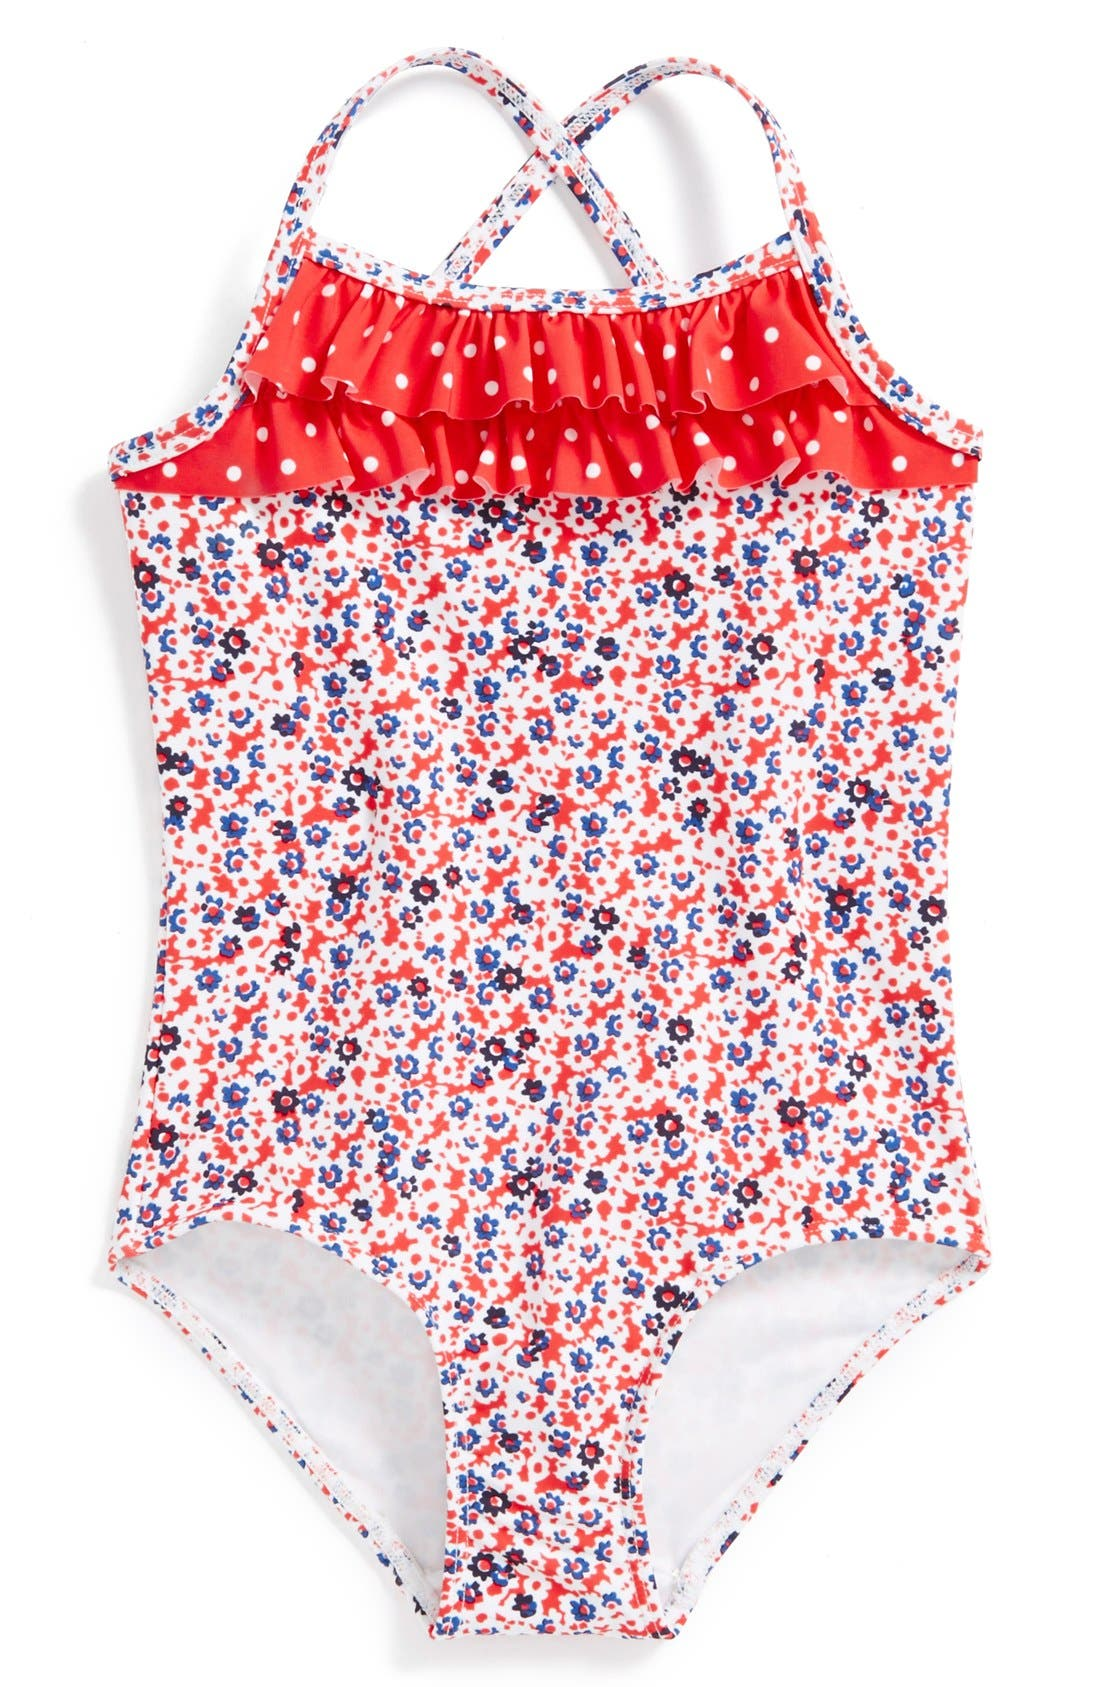 Main Image - Tucker + Tate 'Santa Cruz' Ruffle One-Piece Swimsuit (Little Girls & Big Girls)